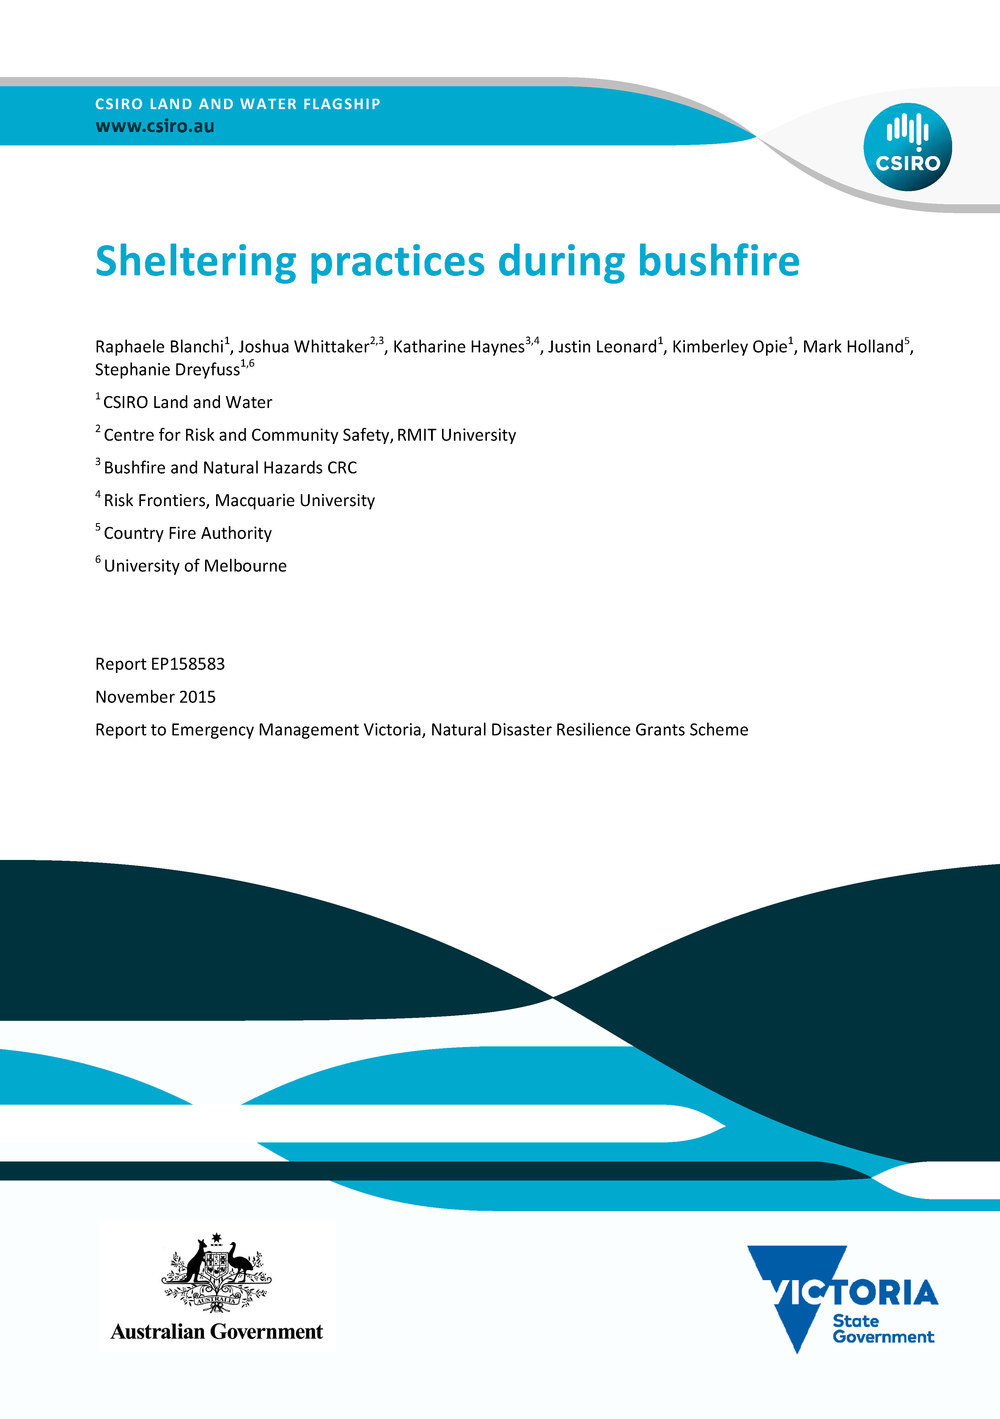 Pages from csiro_report_bushfire_shelters.jpg